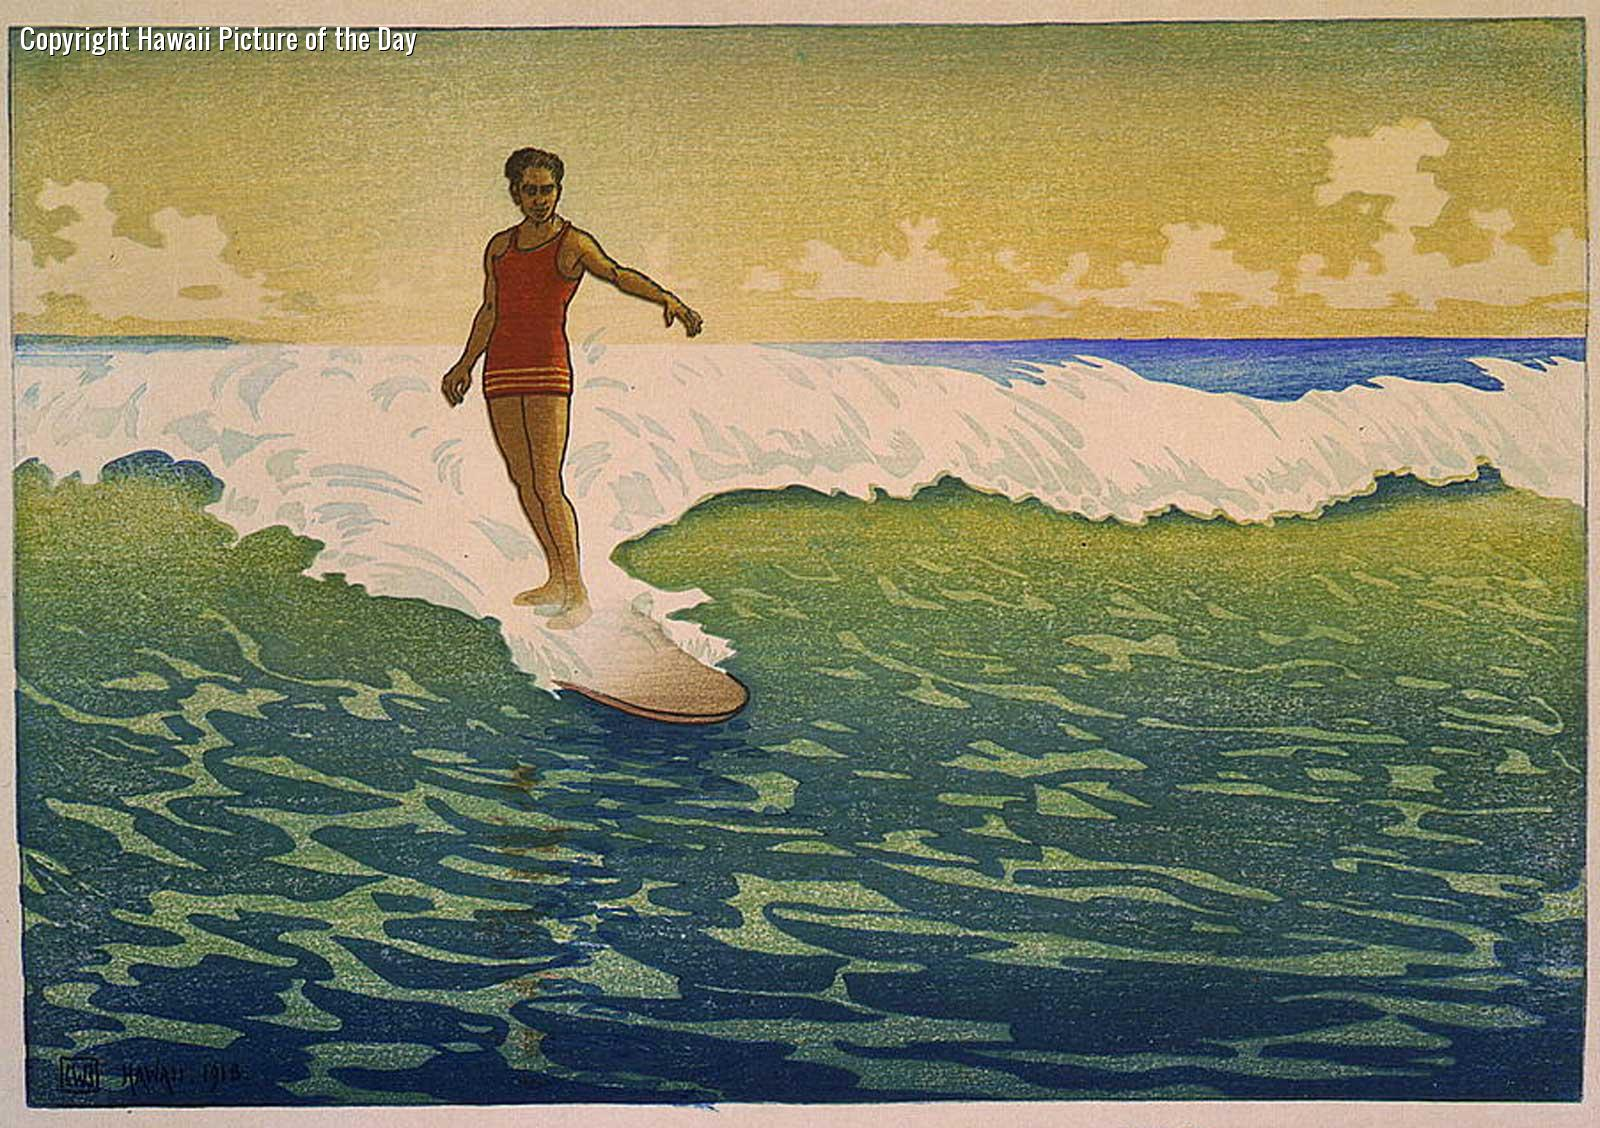 Longboard Surfing Wallpaper Download wallpaper (1600 x